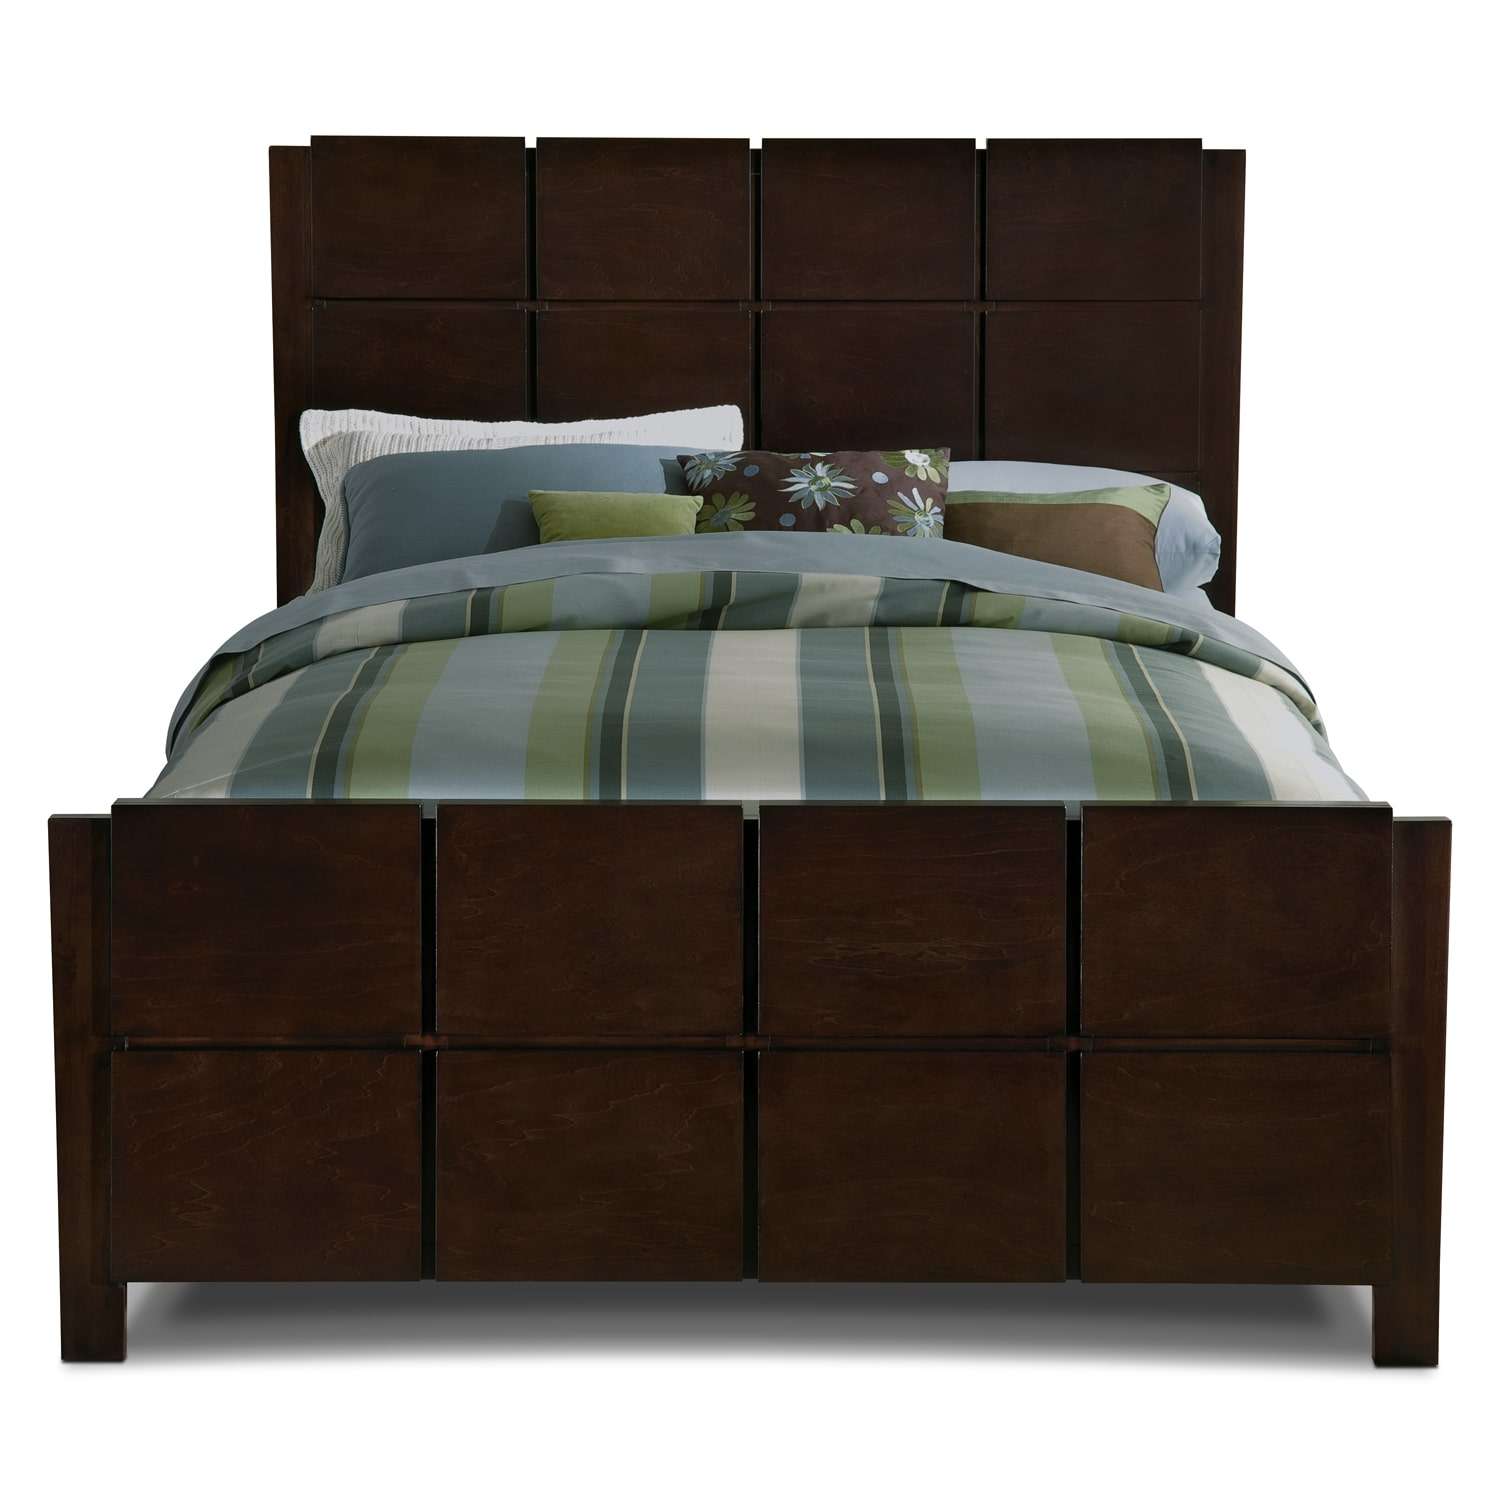 Mosaic king bed dark brown american signature furniture for Signature bedroom furniture